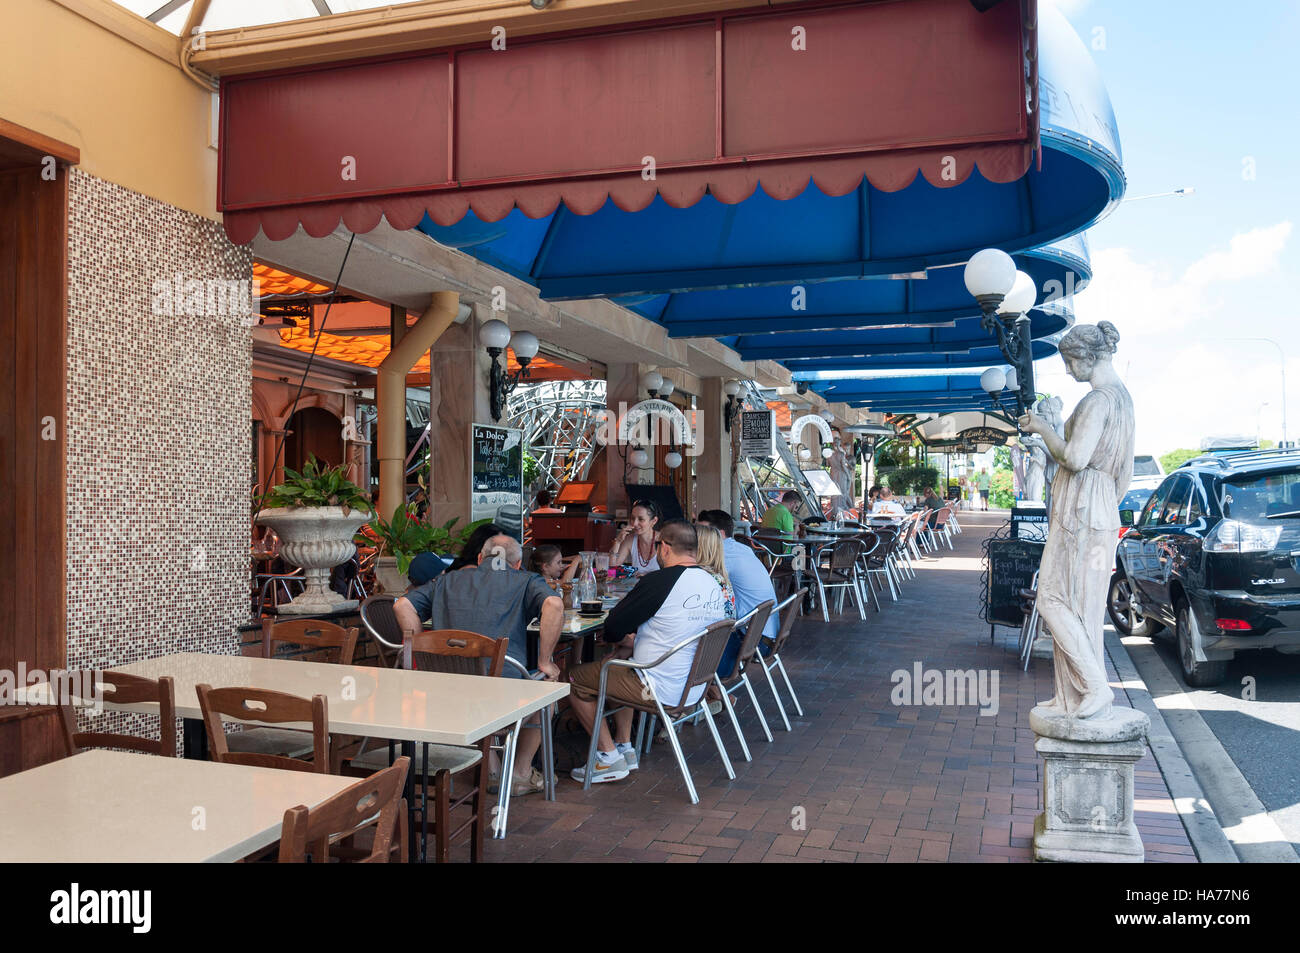 La Dolce Vita Restaurant, Savoir Faire Residence, Park Road, Milton, Brisbane, Queensland, Australia Stock Photo